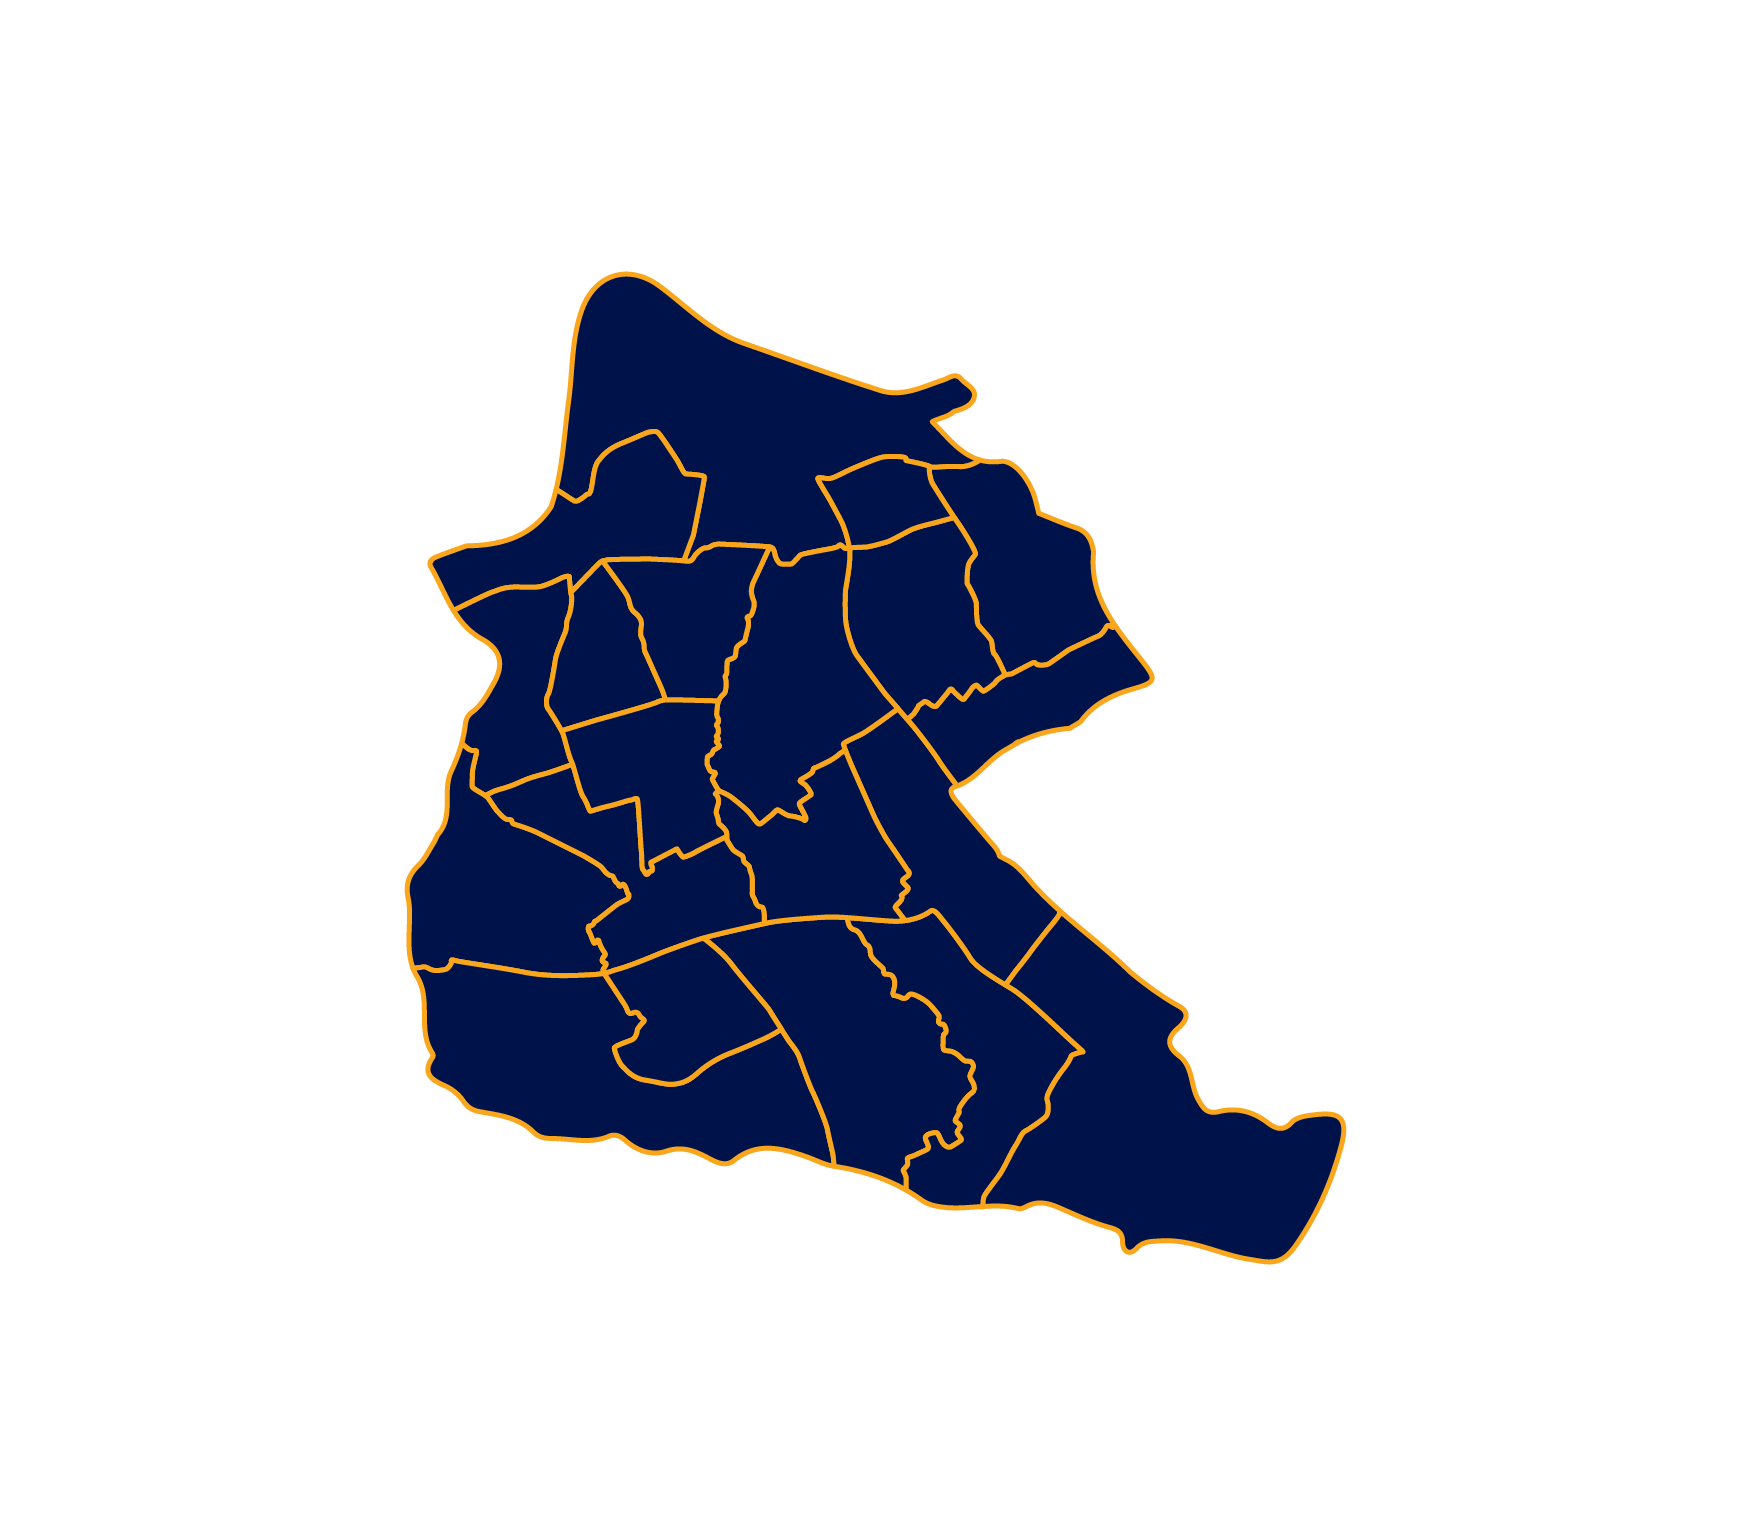 Area map of the Middlesbrough District